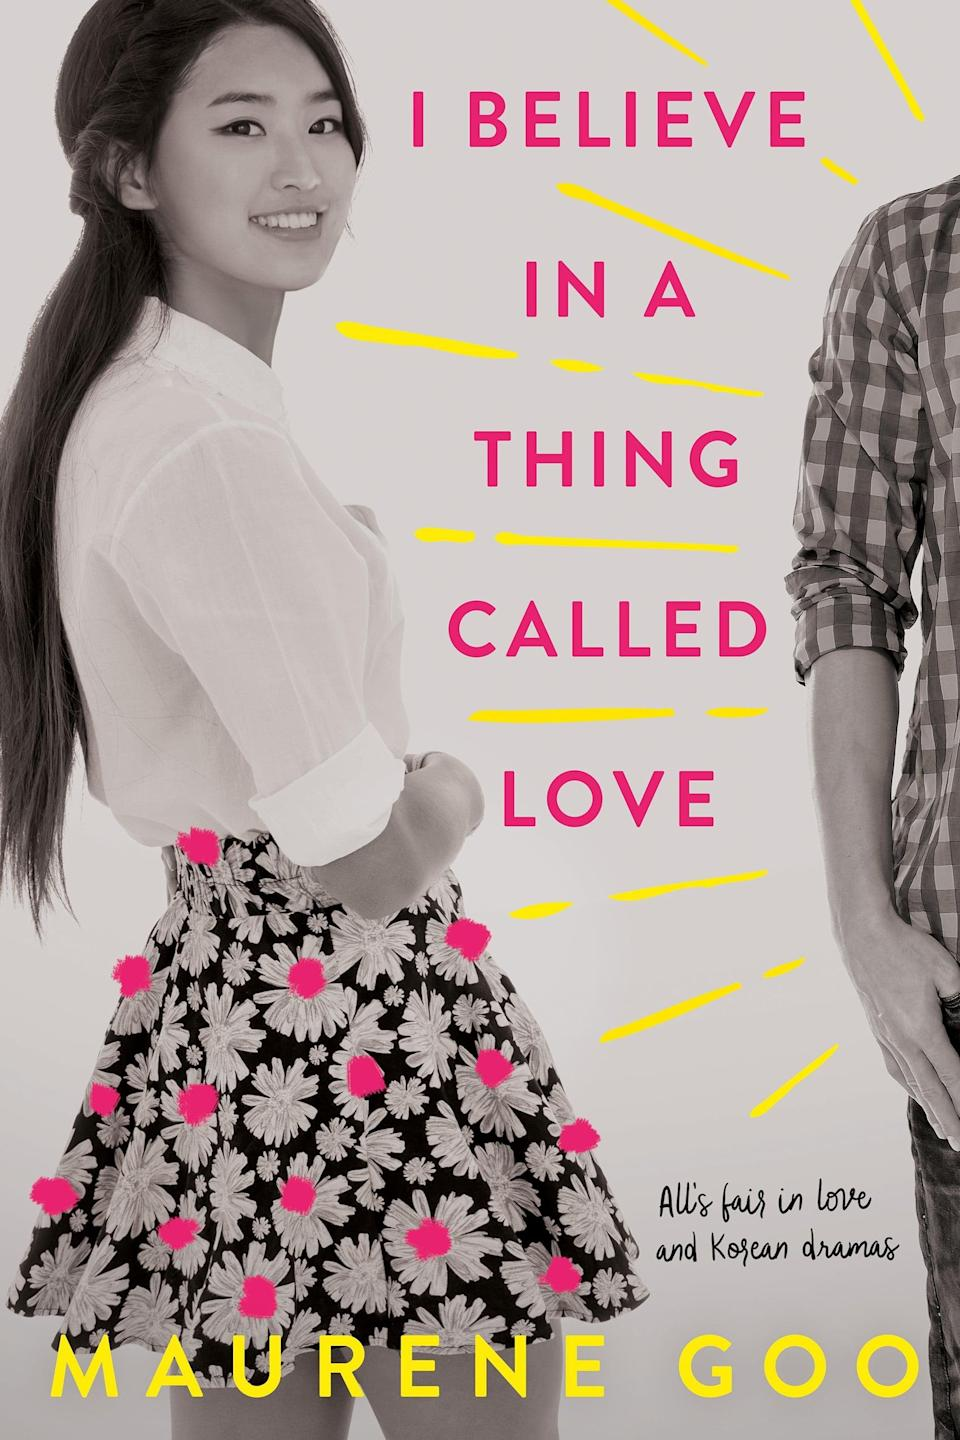 <p>Just as Lara Jean pulls a little too much of her knowledge from rom-coms, Desi Lee, the heroine of Maurene Goo's <strong><span>I Believe in a Thing Called Love</span></strong>, gets her perspective on love from Korean dramas. When she sets out to pursue her moody, artsy crush Luca, Desi quickly realizes that on-screen drama doesn't come close to being a road map for real love.</p>